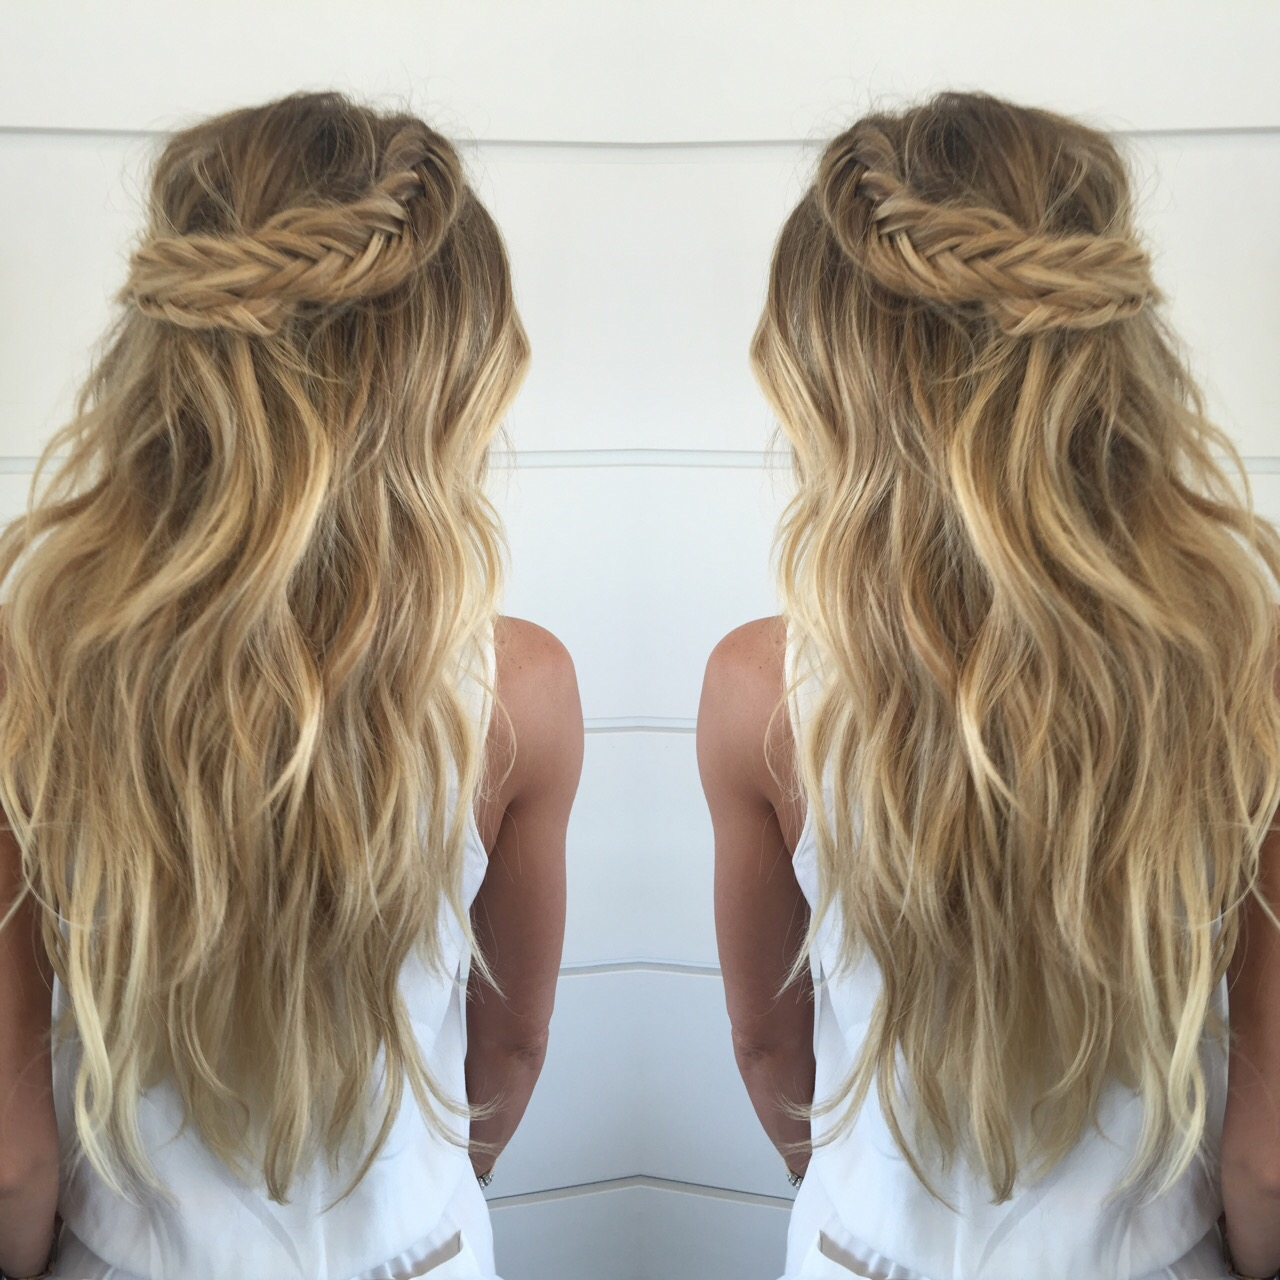 Stunning Braids With Cashmere Hair Cashmere Hair Clip In Extensions